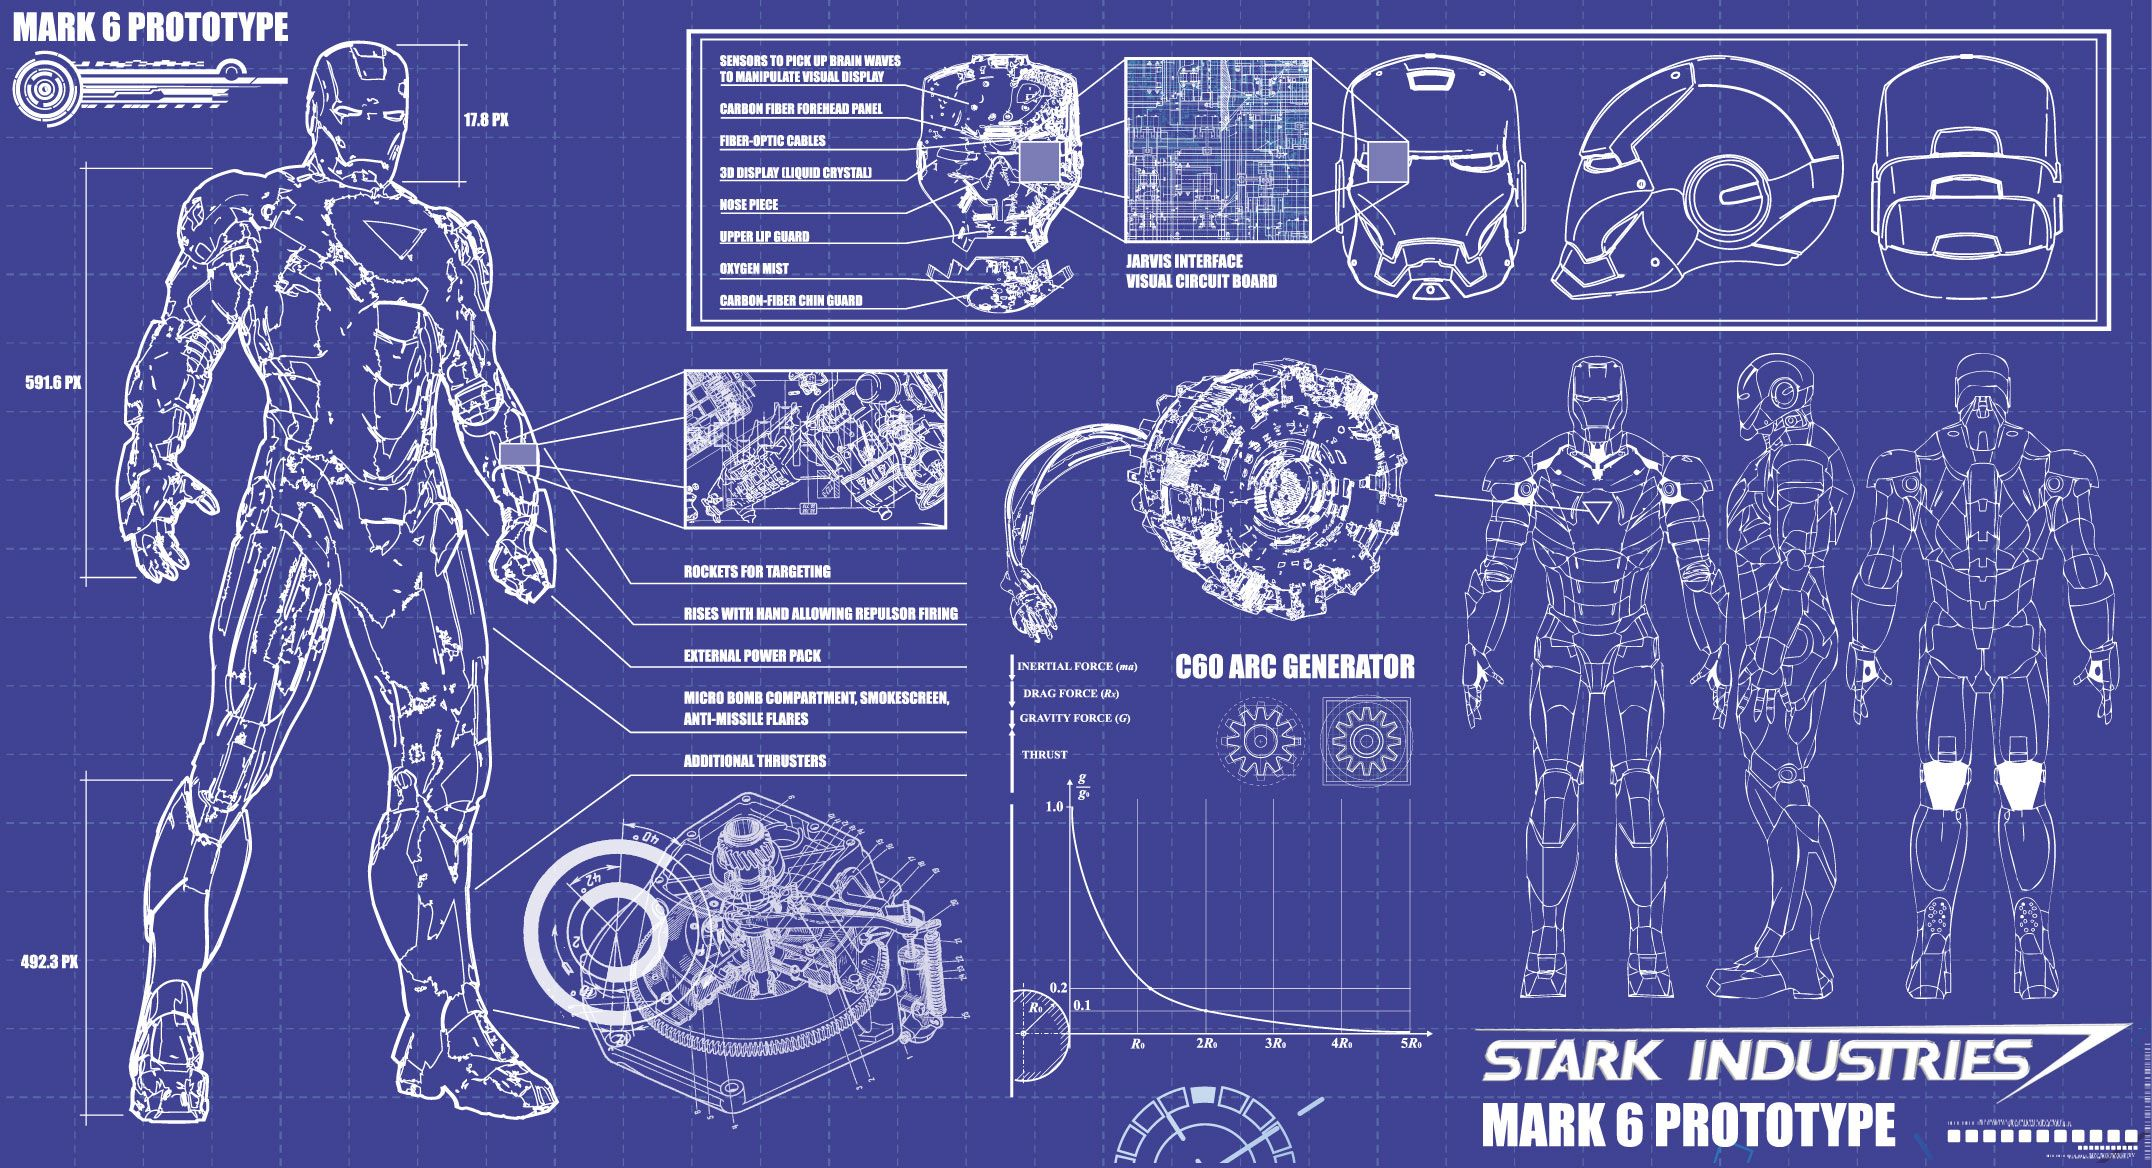 Download iron man blueprints stark industries 17202 8 hd desktop download iron man blueprints stark industries 17202 8 hd desktop wallpapers wallpapers87 high definition desktop wallpapers malvernweather